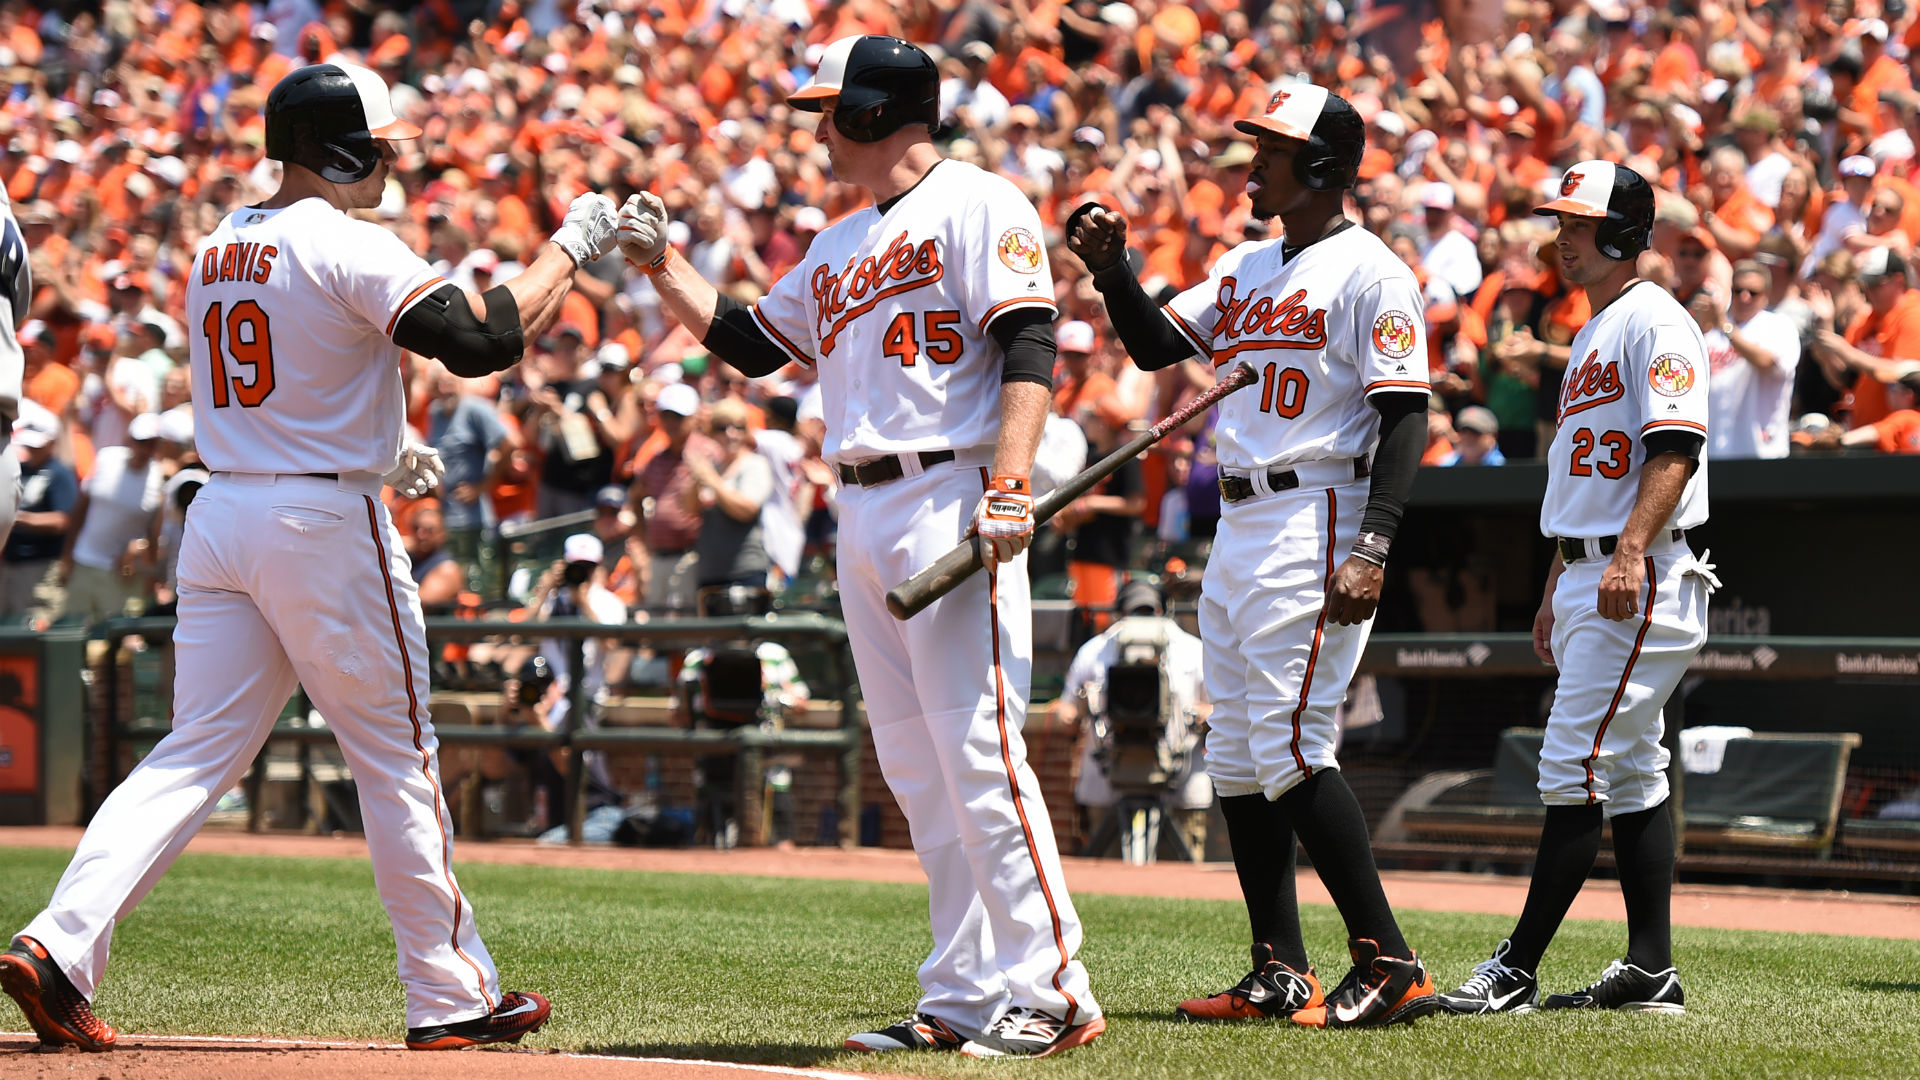 Orioles-baltimore-getty_1opfm8kko4cv21onh2xhp11i43